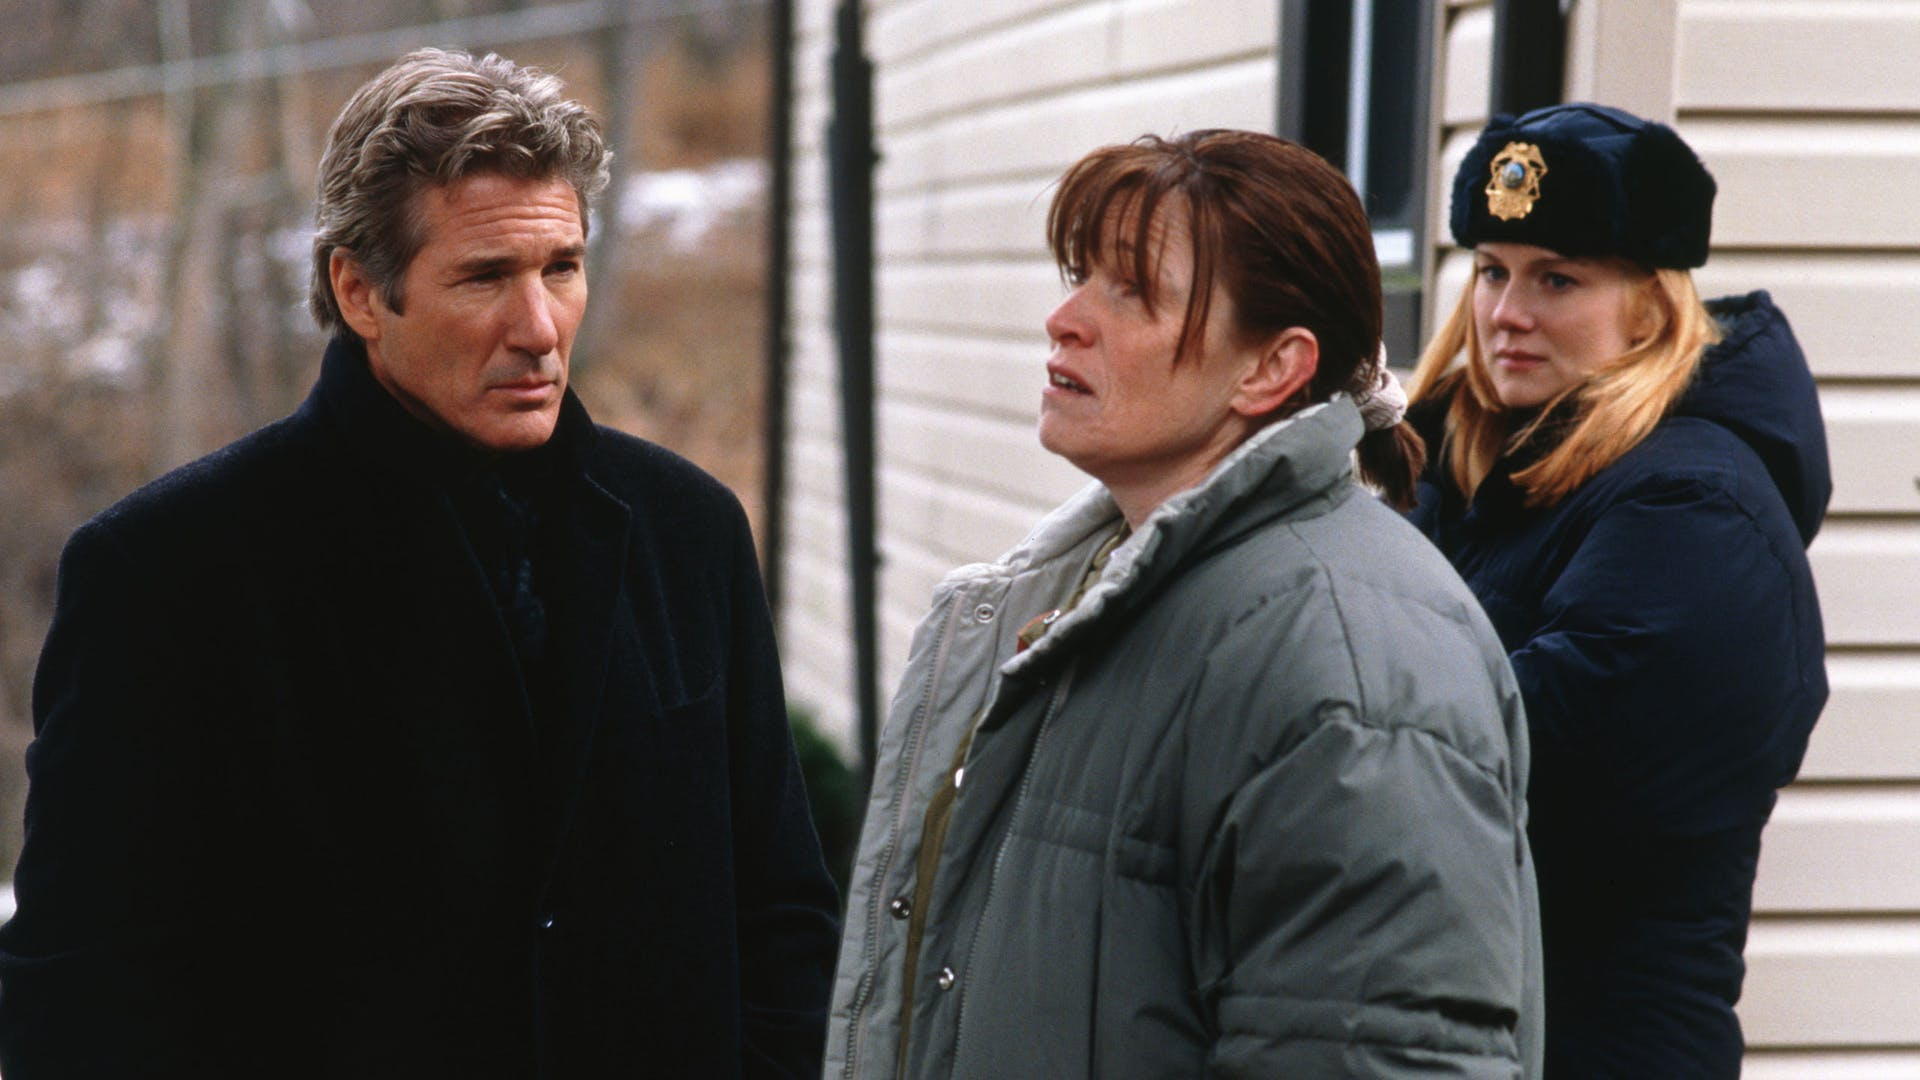 Richard Gere and sheriff Laura Linney question local woman Lucinda Jenney in The Mothman Prophecies (2002)